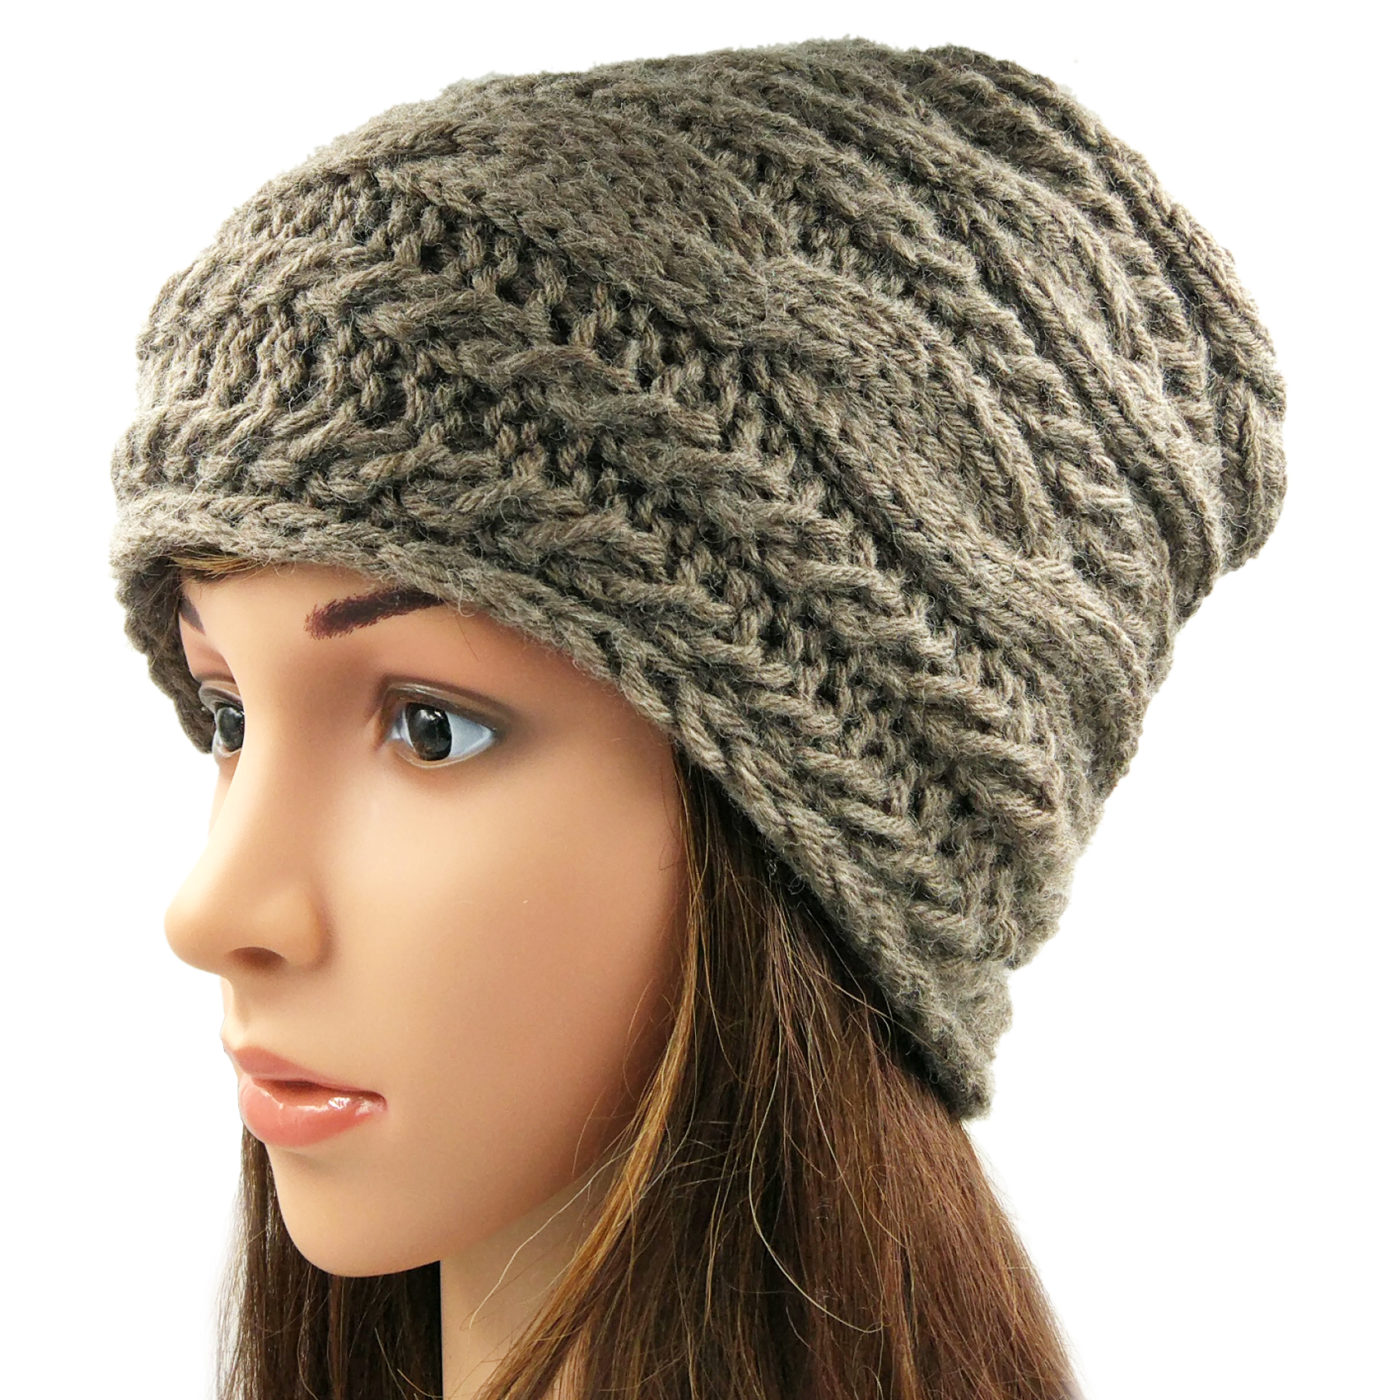 Women s Cable Slouchy Beanie Cap - Brown • Magic Needles ... a1b52db0d11